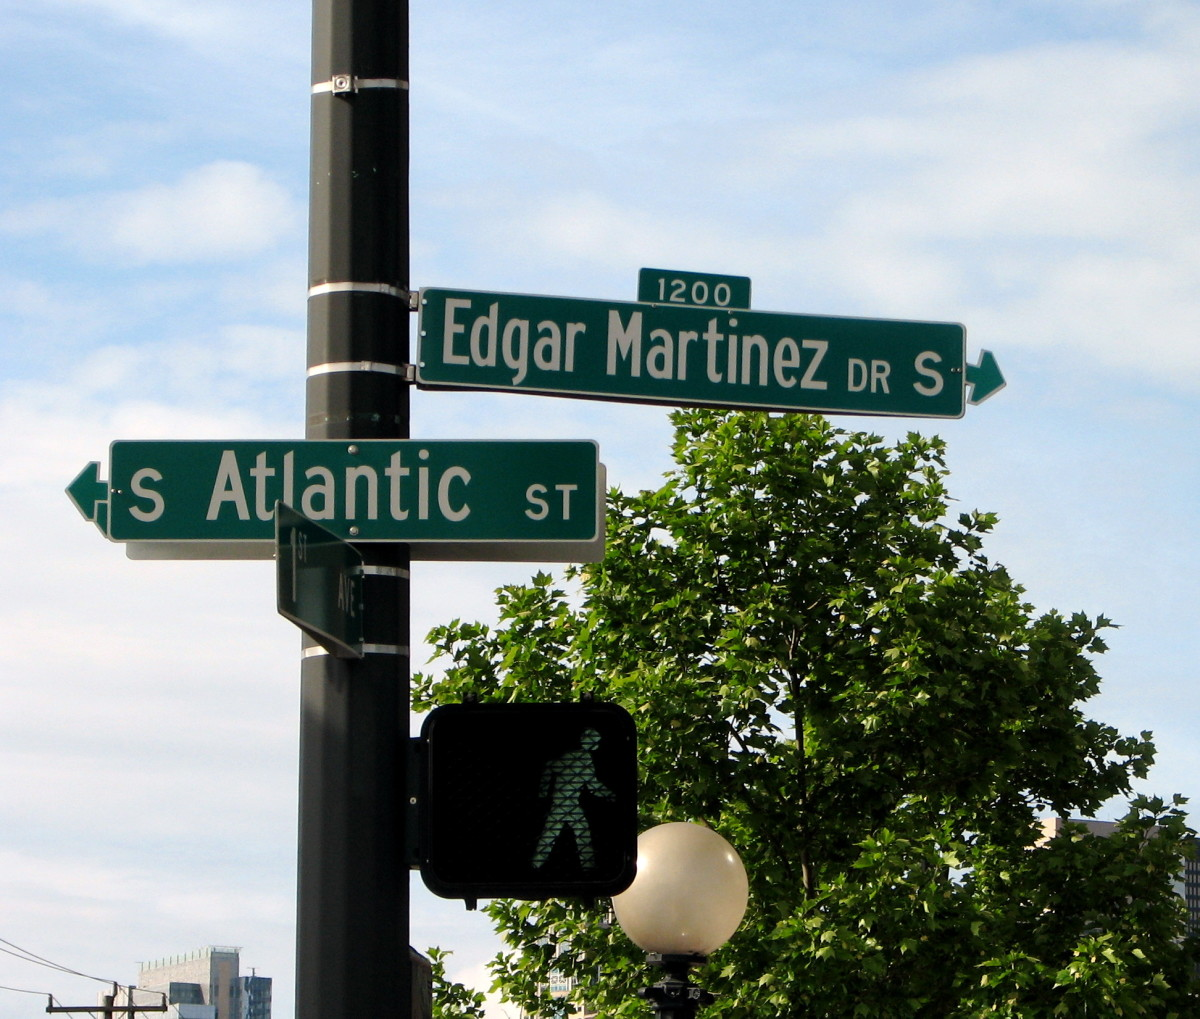 The city of Seattle renamed a short street near Safeco Field after former Mariners designated hitter, Edgar Martinez, who was later inducted into the Baseball Hall of Fame.